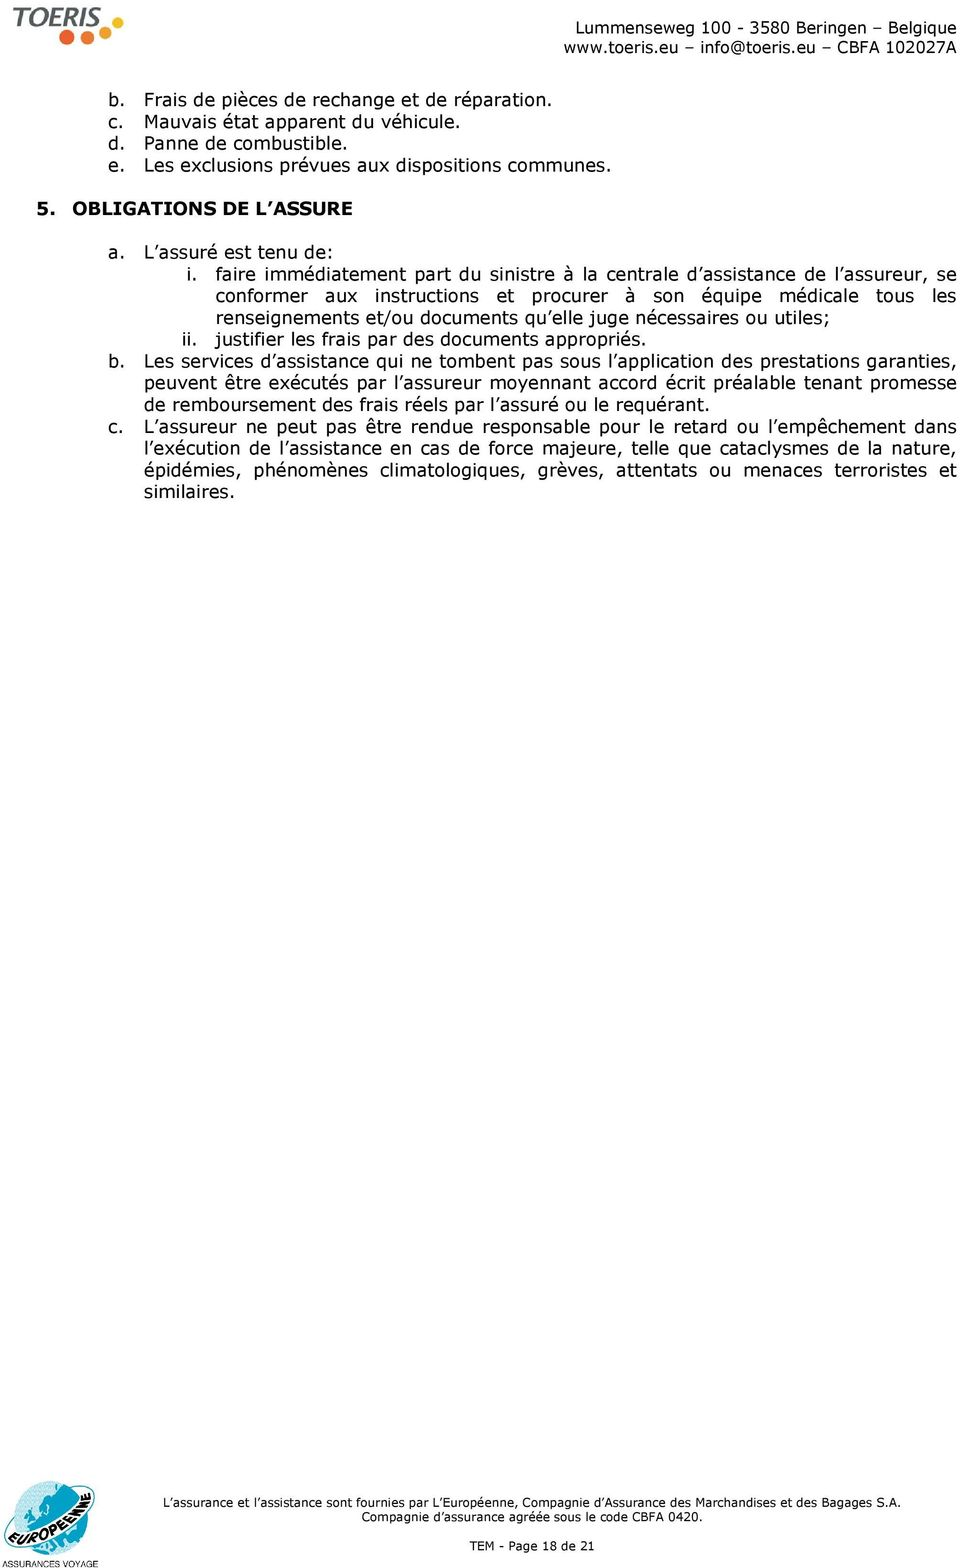 faire immédiatement part du sinistre à la centrale d assistance de l assureur, se conformer aux instructions et procurer à son équipe médicale tous les renseignements et/ou documents qu elle juge